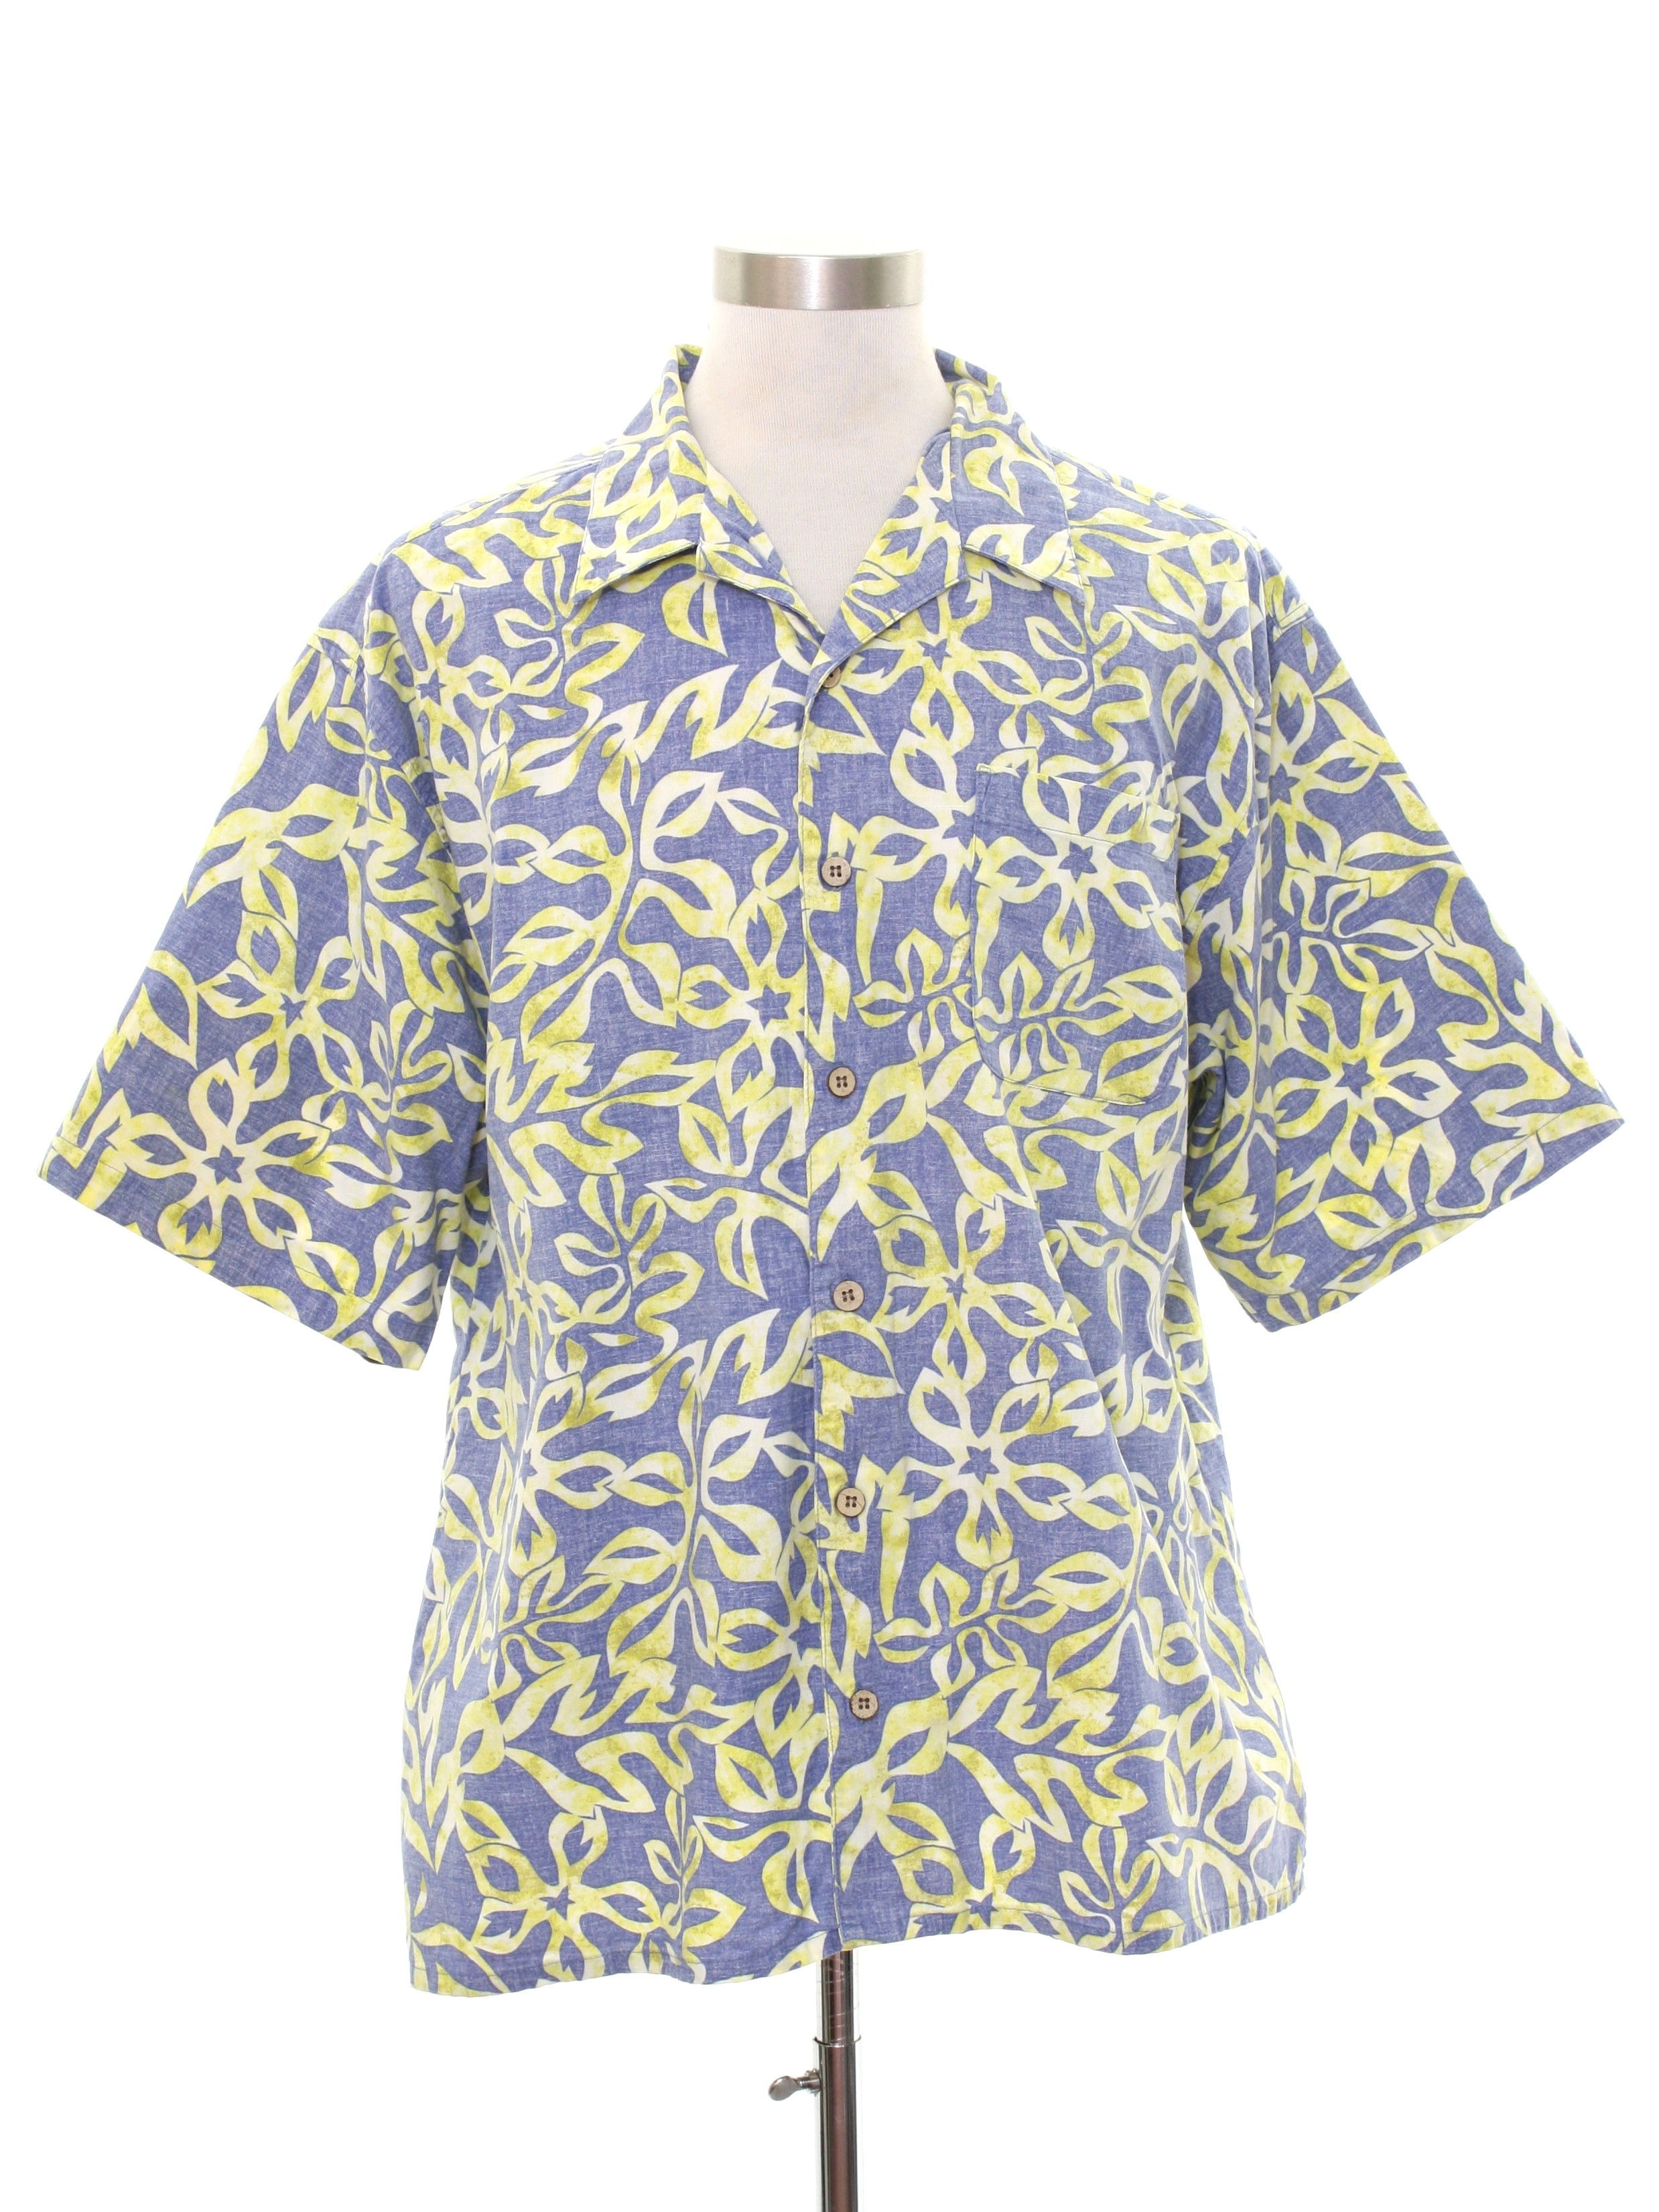 ef4b92d7 Hawaiian Shirt: 80s Style -OP- Mens muted blue background cotton ...